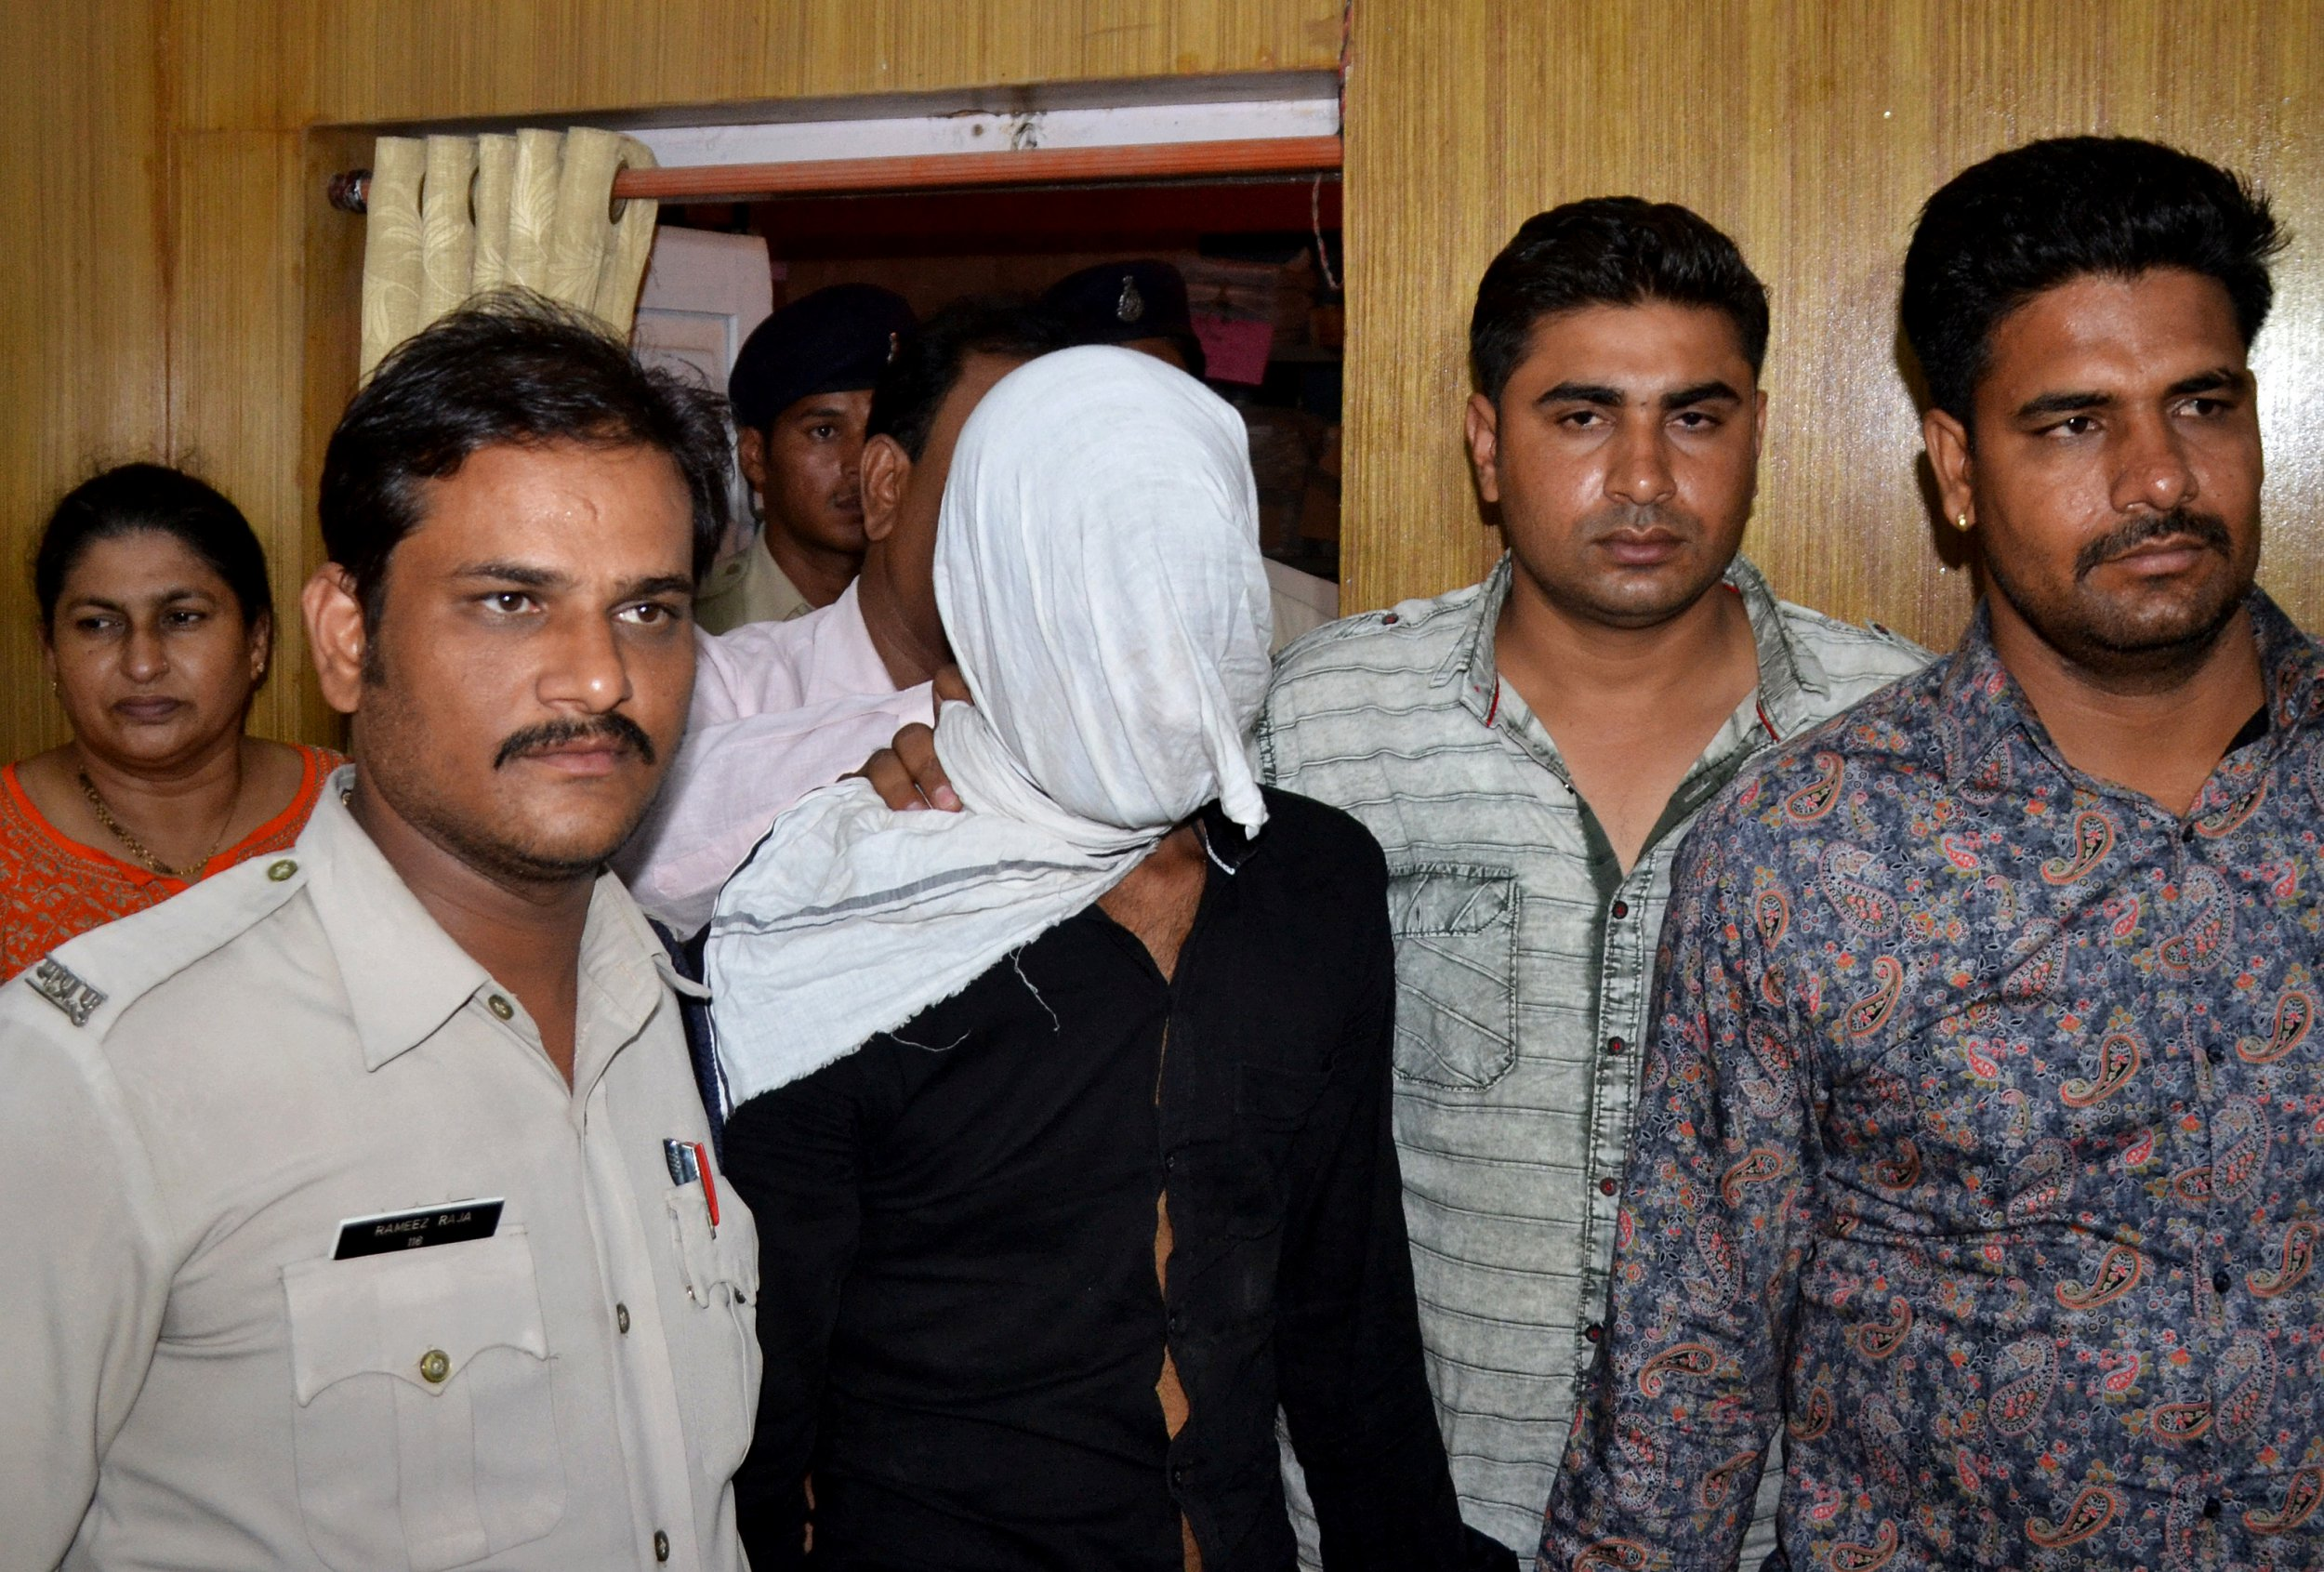 Plain-clothes police officers escort Irfan (face covered), who is accused of rape of a seven-year-old girl, as he is presented in front of the media in Mandsaur, India, June 27, 2018. Picture taken on June 27, 2018. REUTERS/Stringer - RC19AED63C90